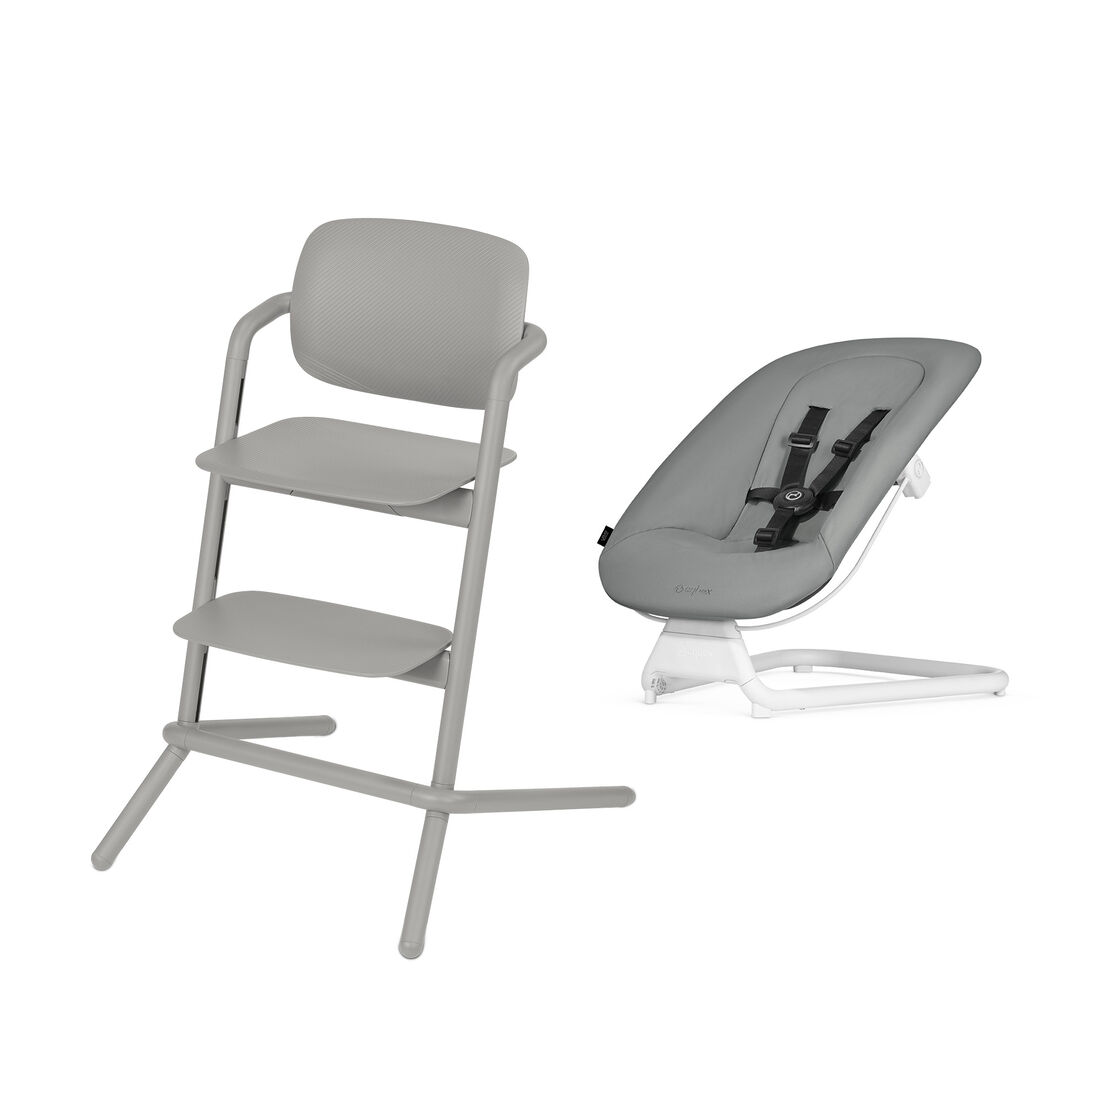 CYBEX Configure Lemo Chair mit Bouncer (Set) in  large image number 1